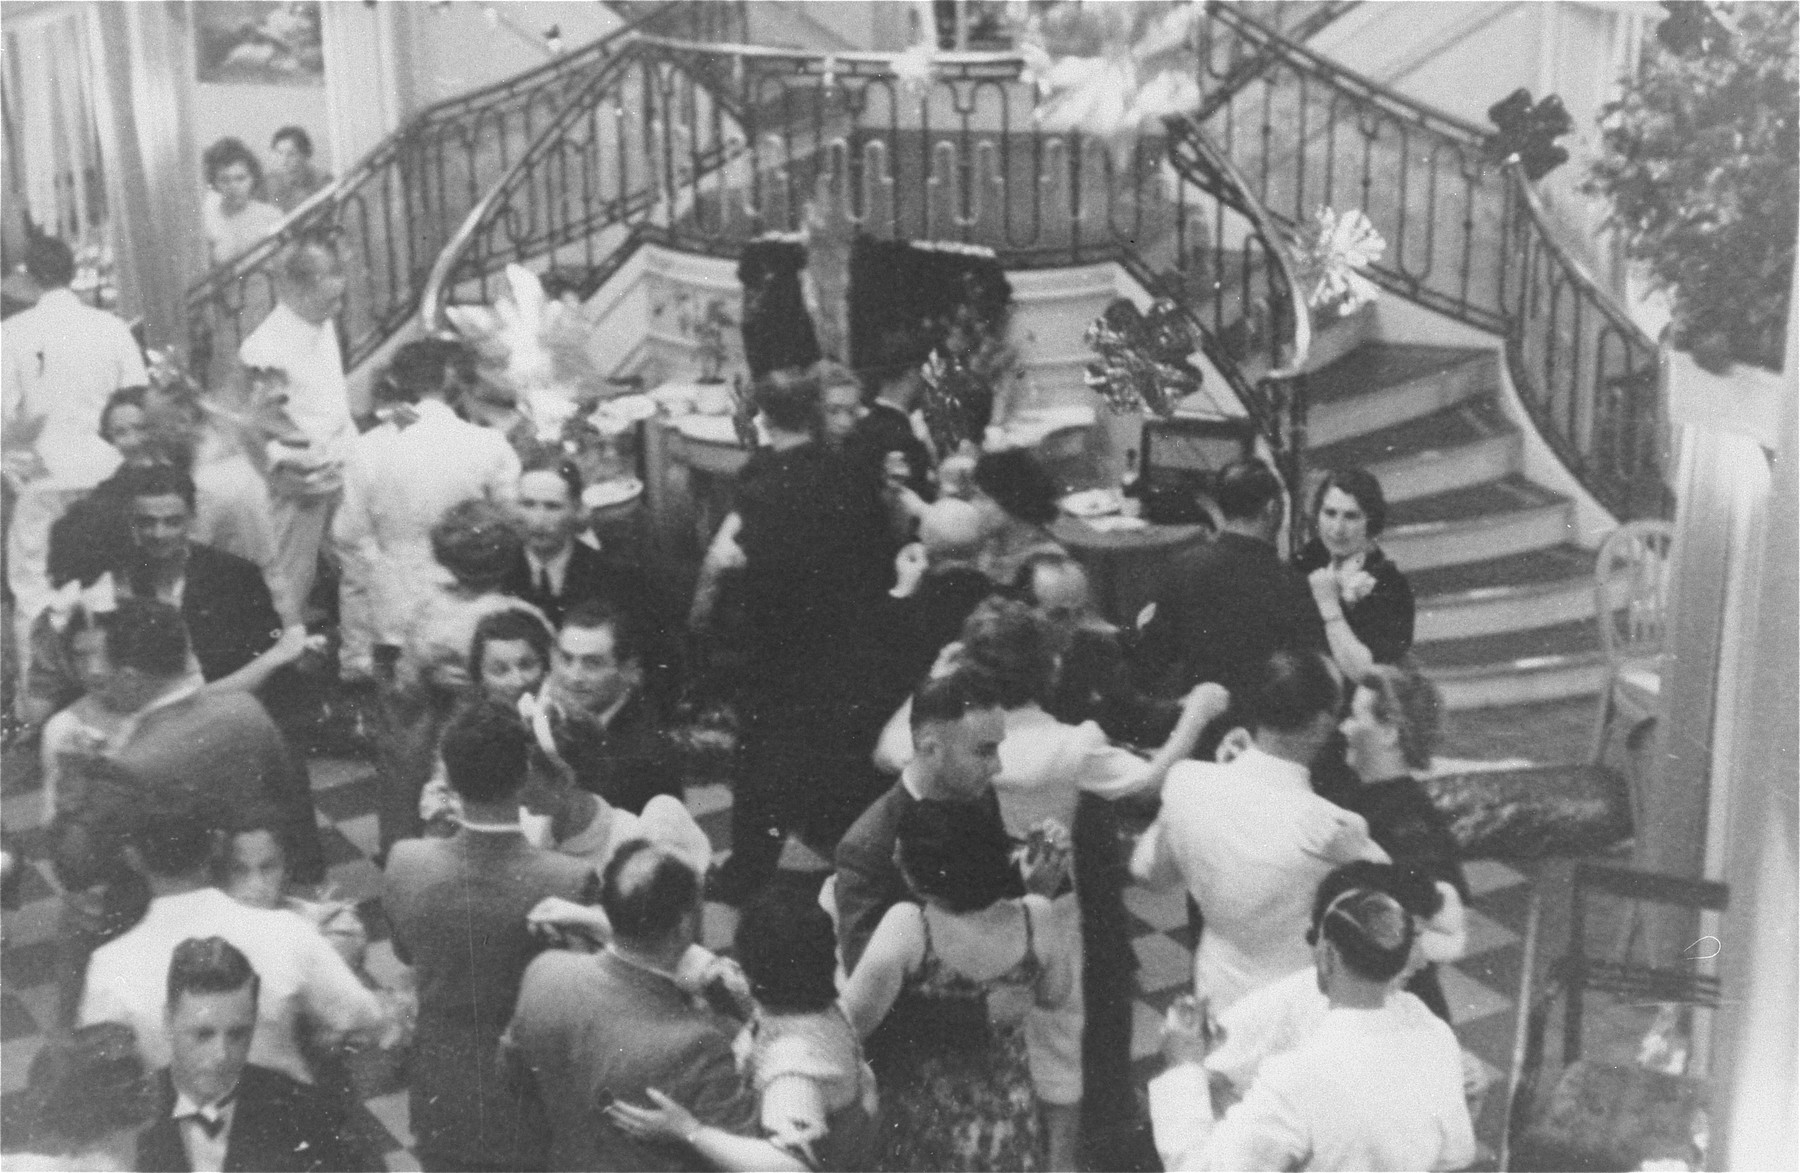 Refugees on board the MS St. Louis dance in the ship's ballroom.  Photo from the personal St. Louis photo album assembled by the donor's mother, Lotte Altschul.